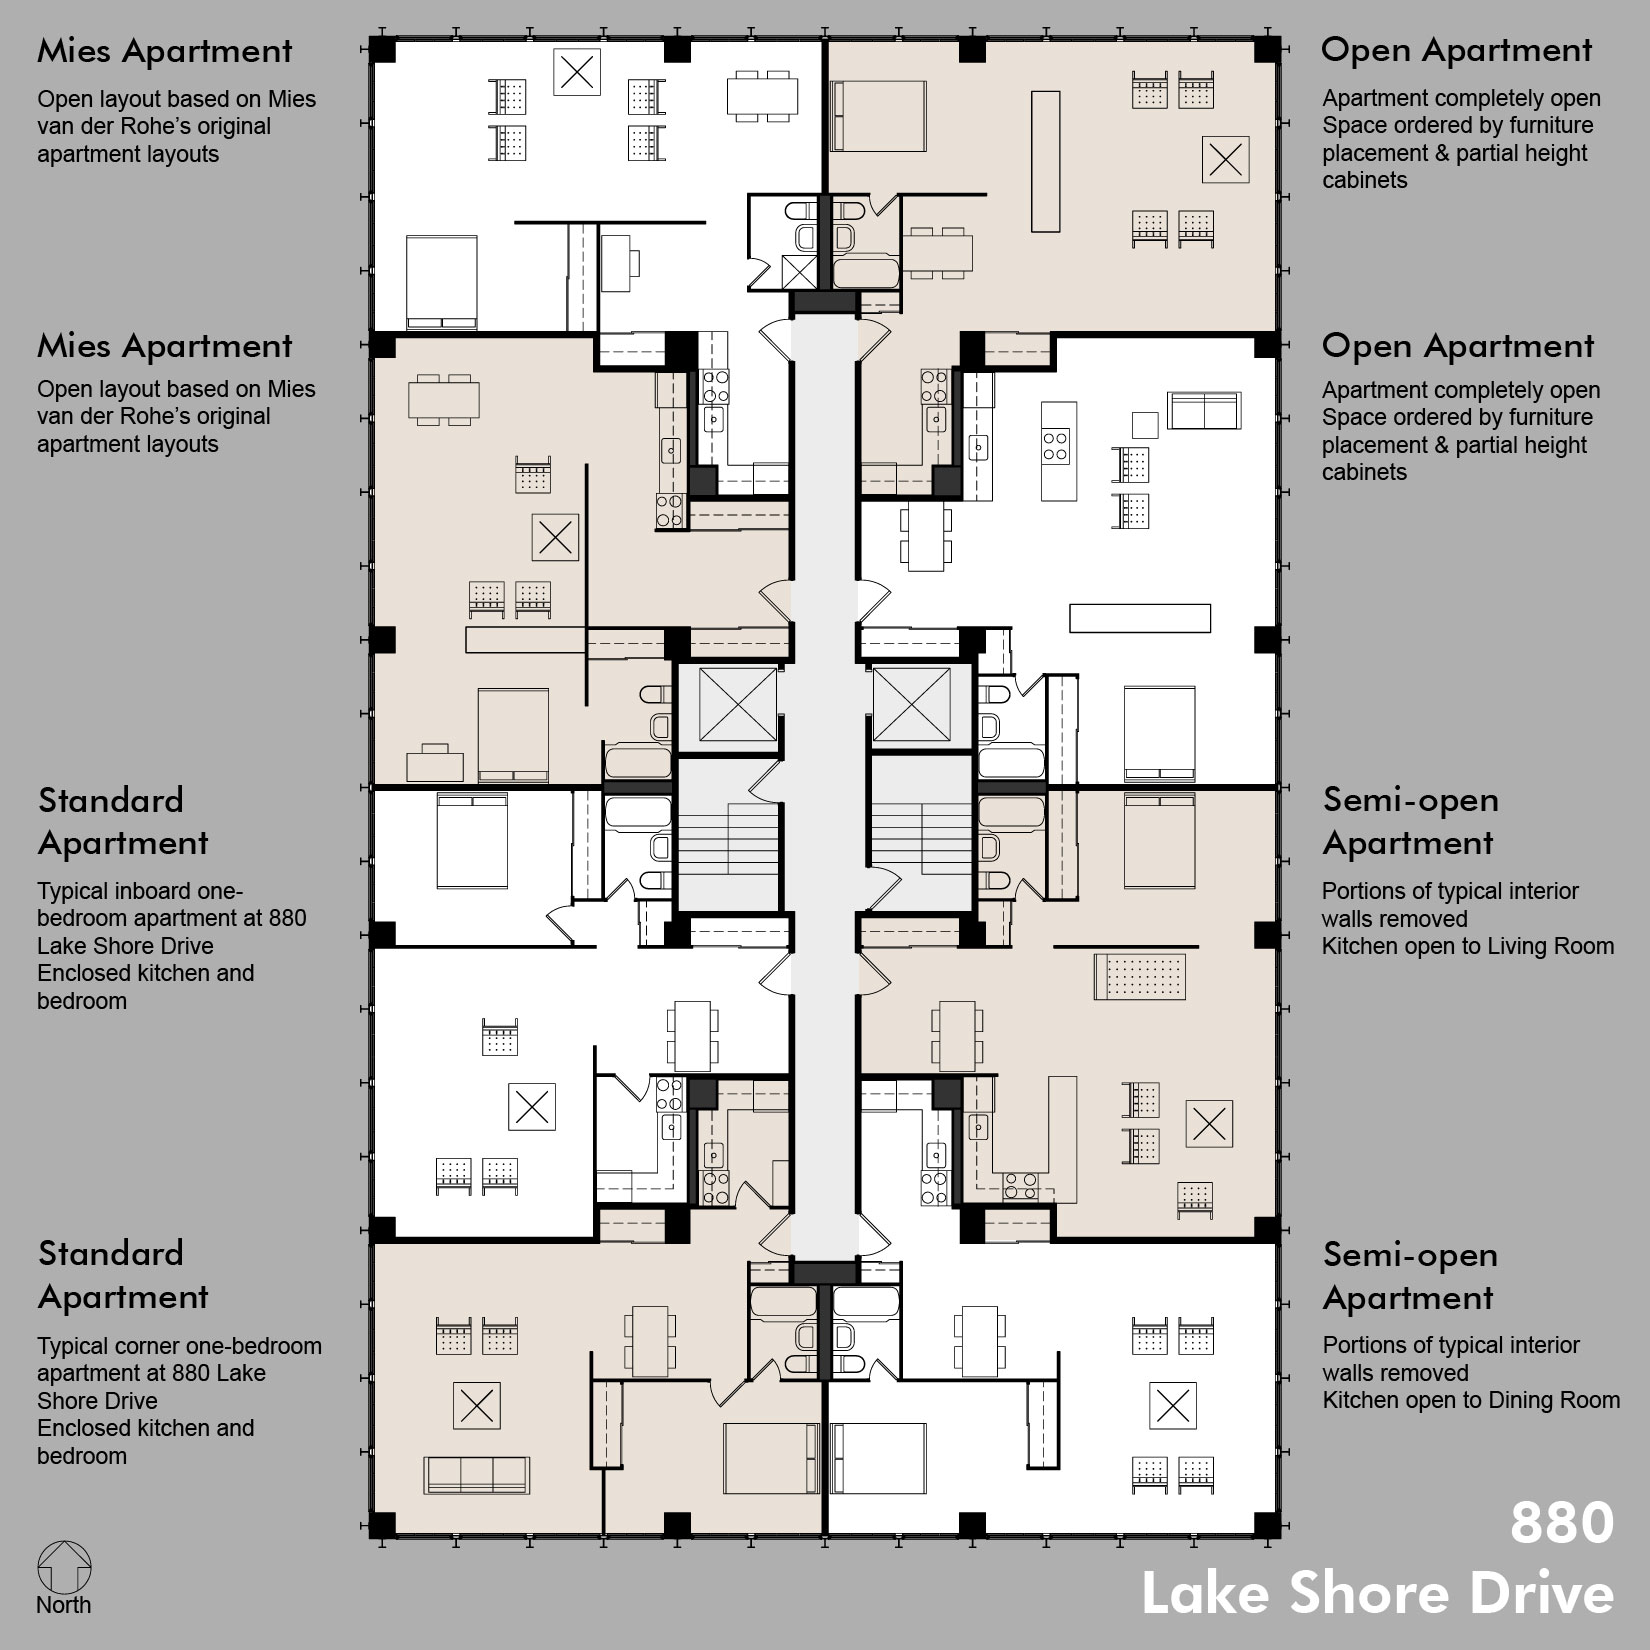 Apartments Floor Plans 880_floor_plans_including_standard_apt